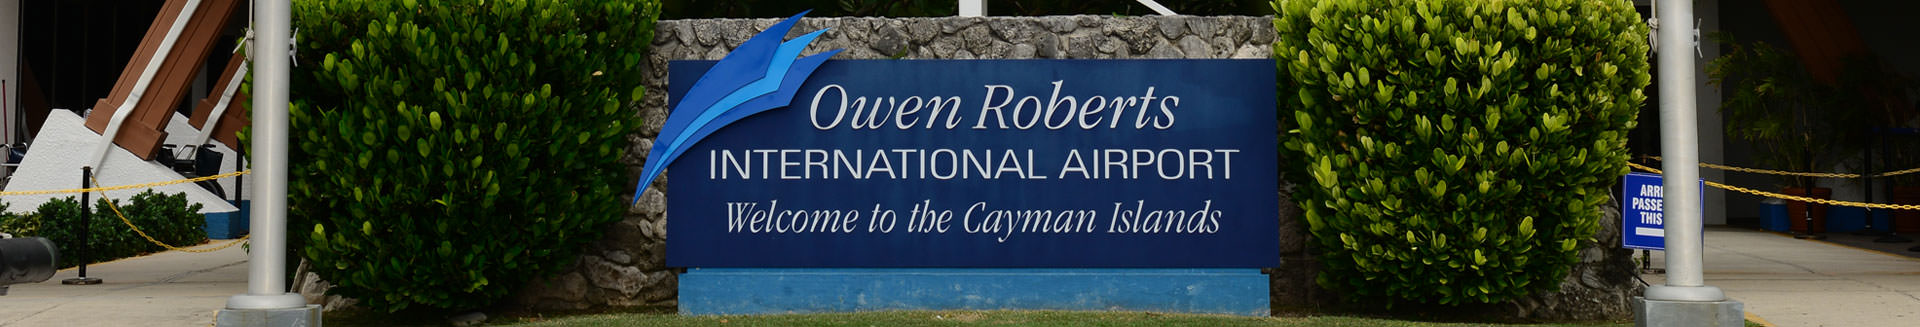 Overview of Owen Roberts International Airport